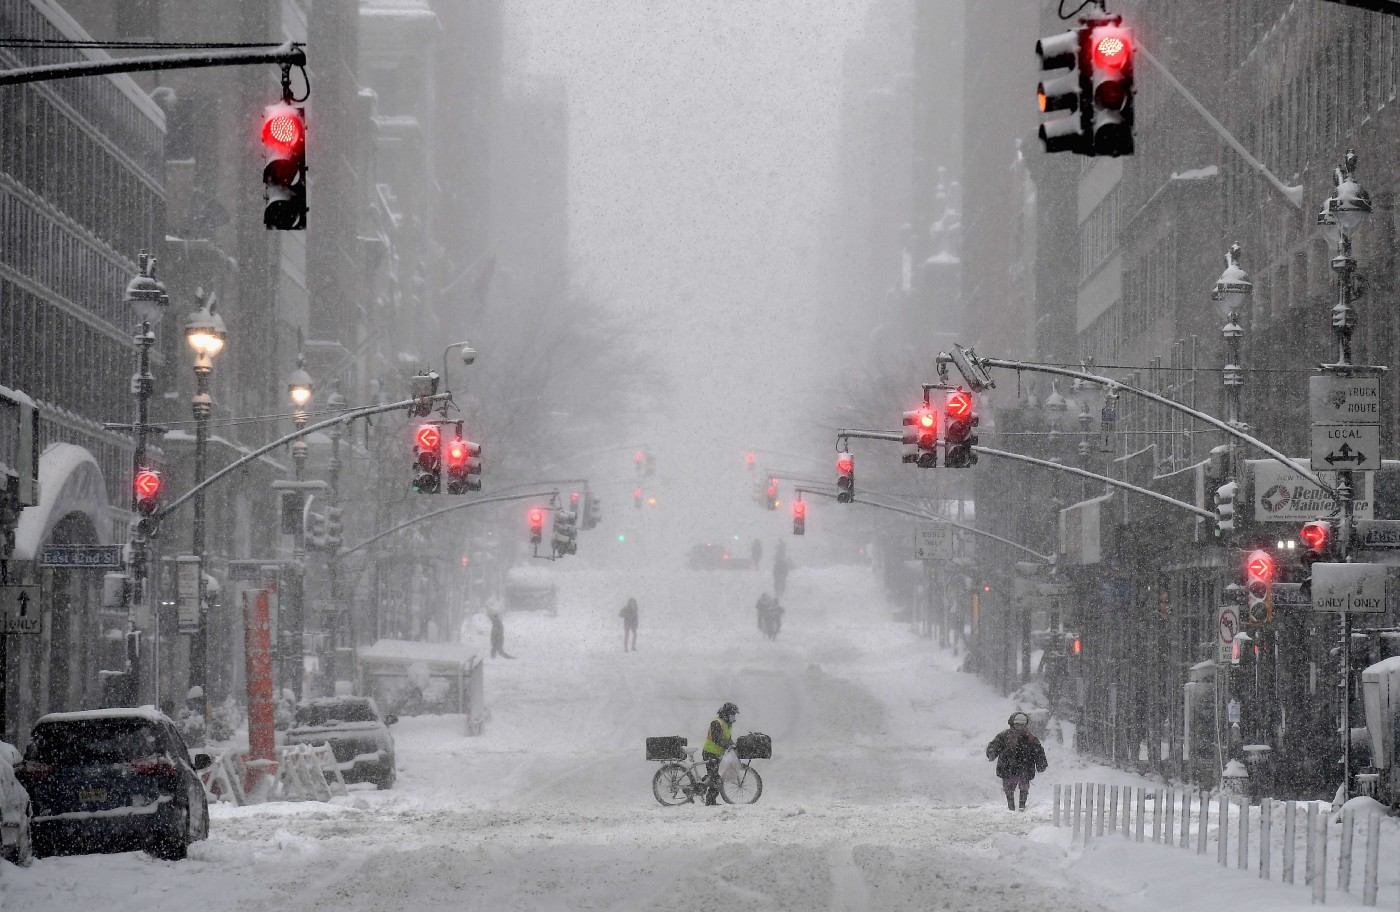 A snow covered street in midtown during a winter storm on February 1, 2021 in New York City.